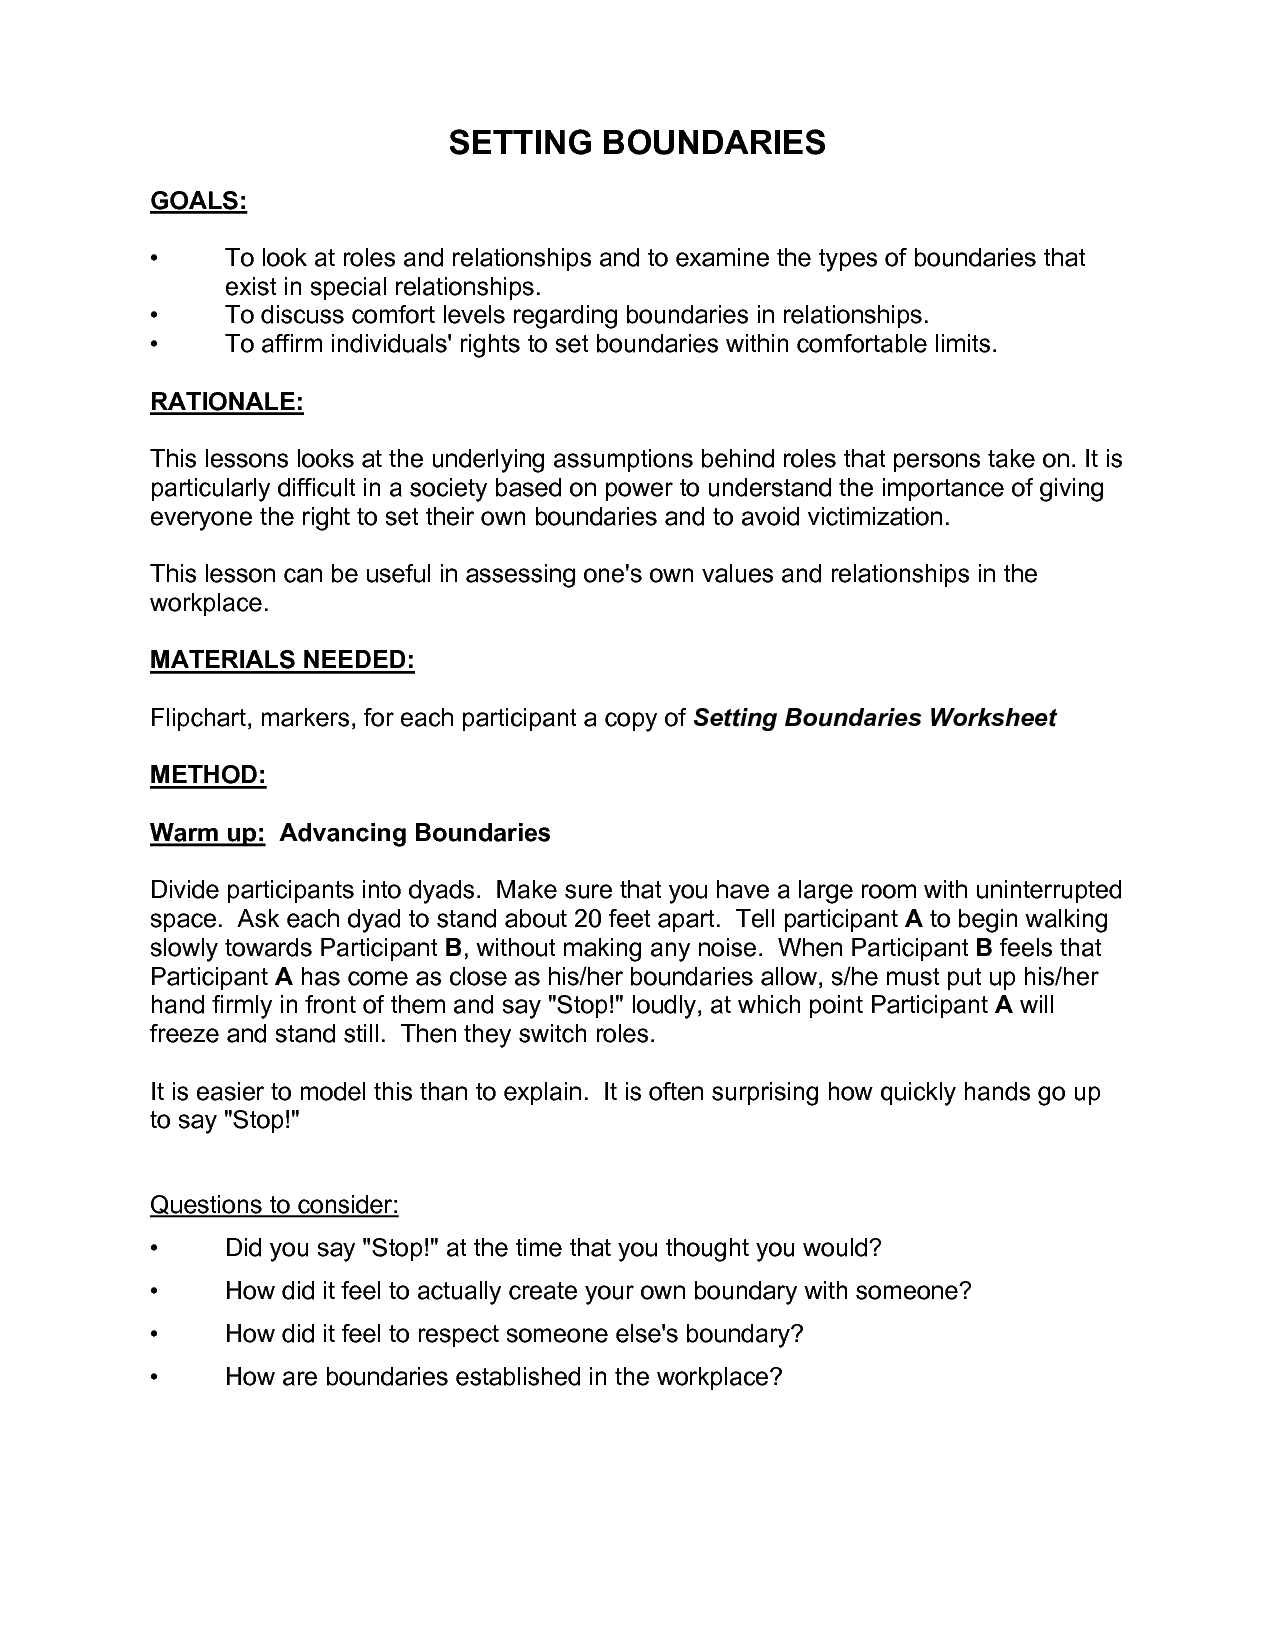 HealthyBoundariesWorksheet – Boundaries in Relationships Worksheet